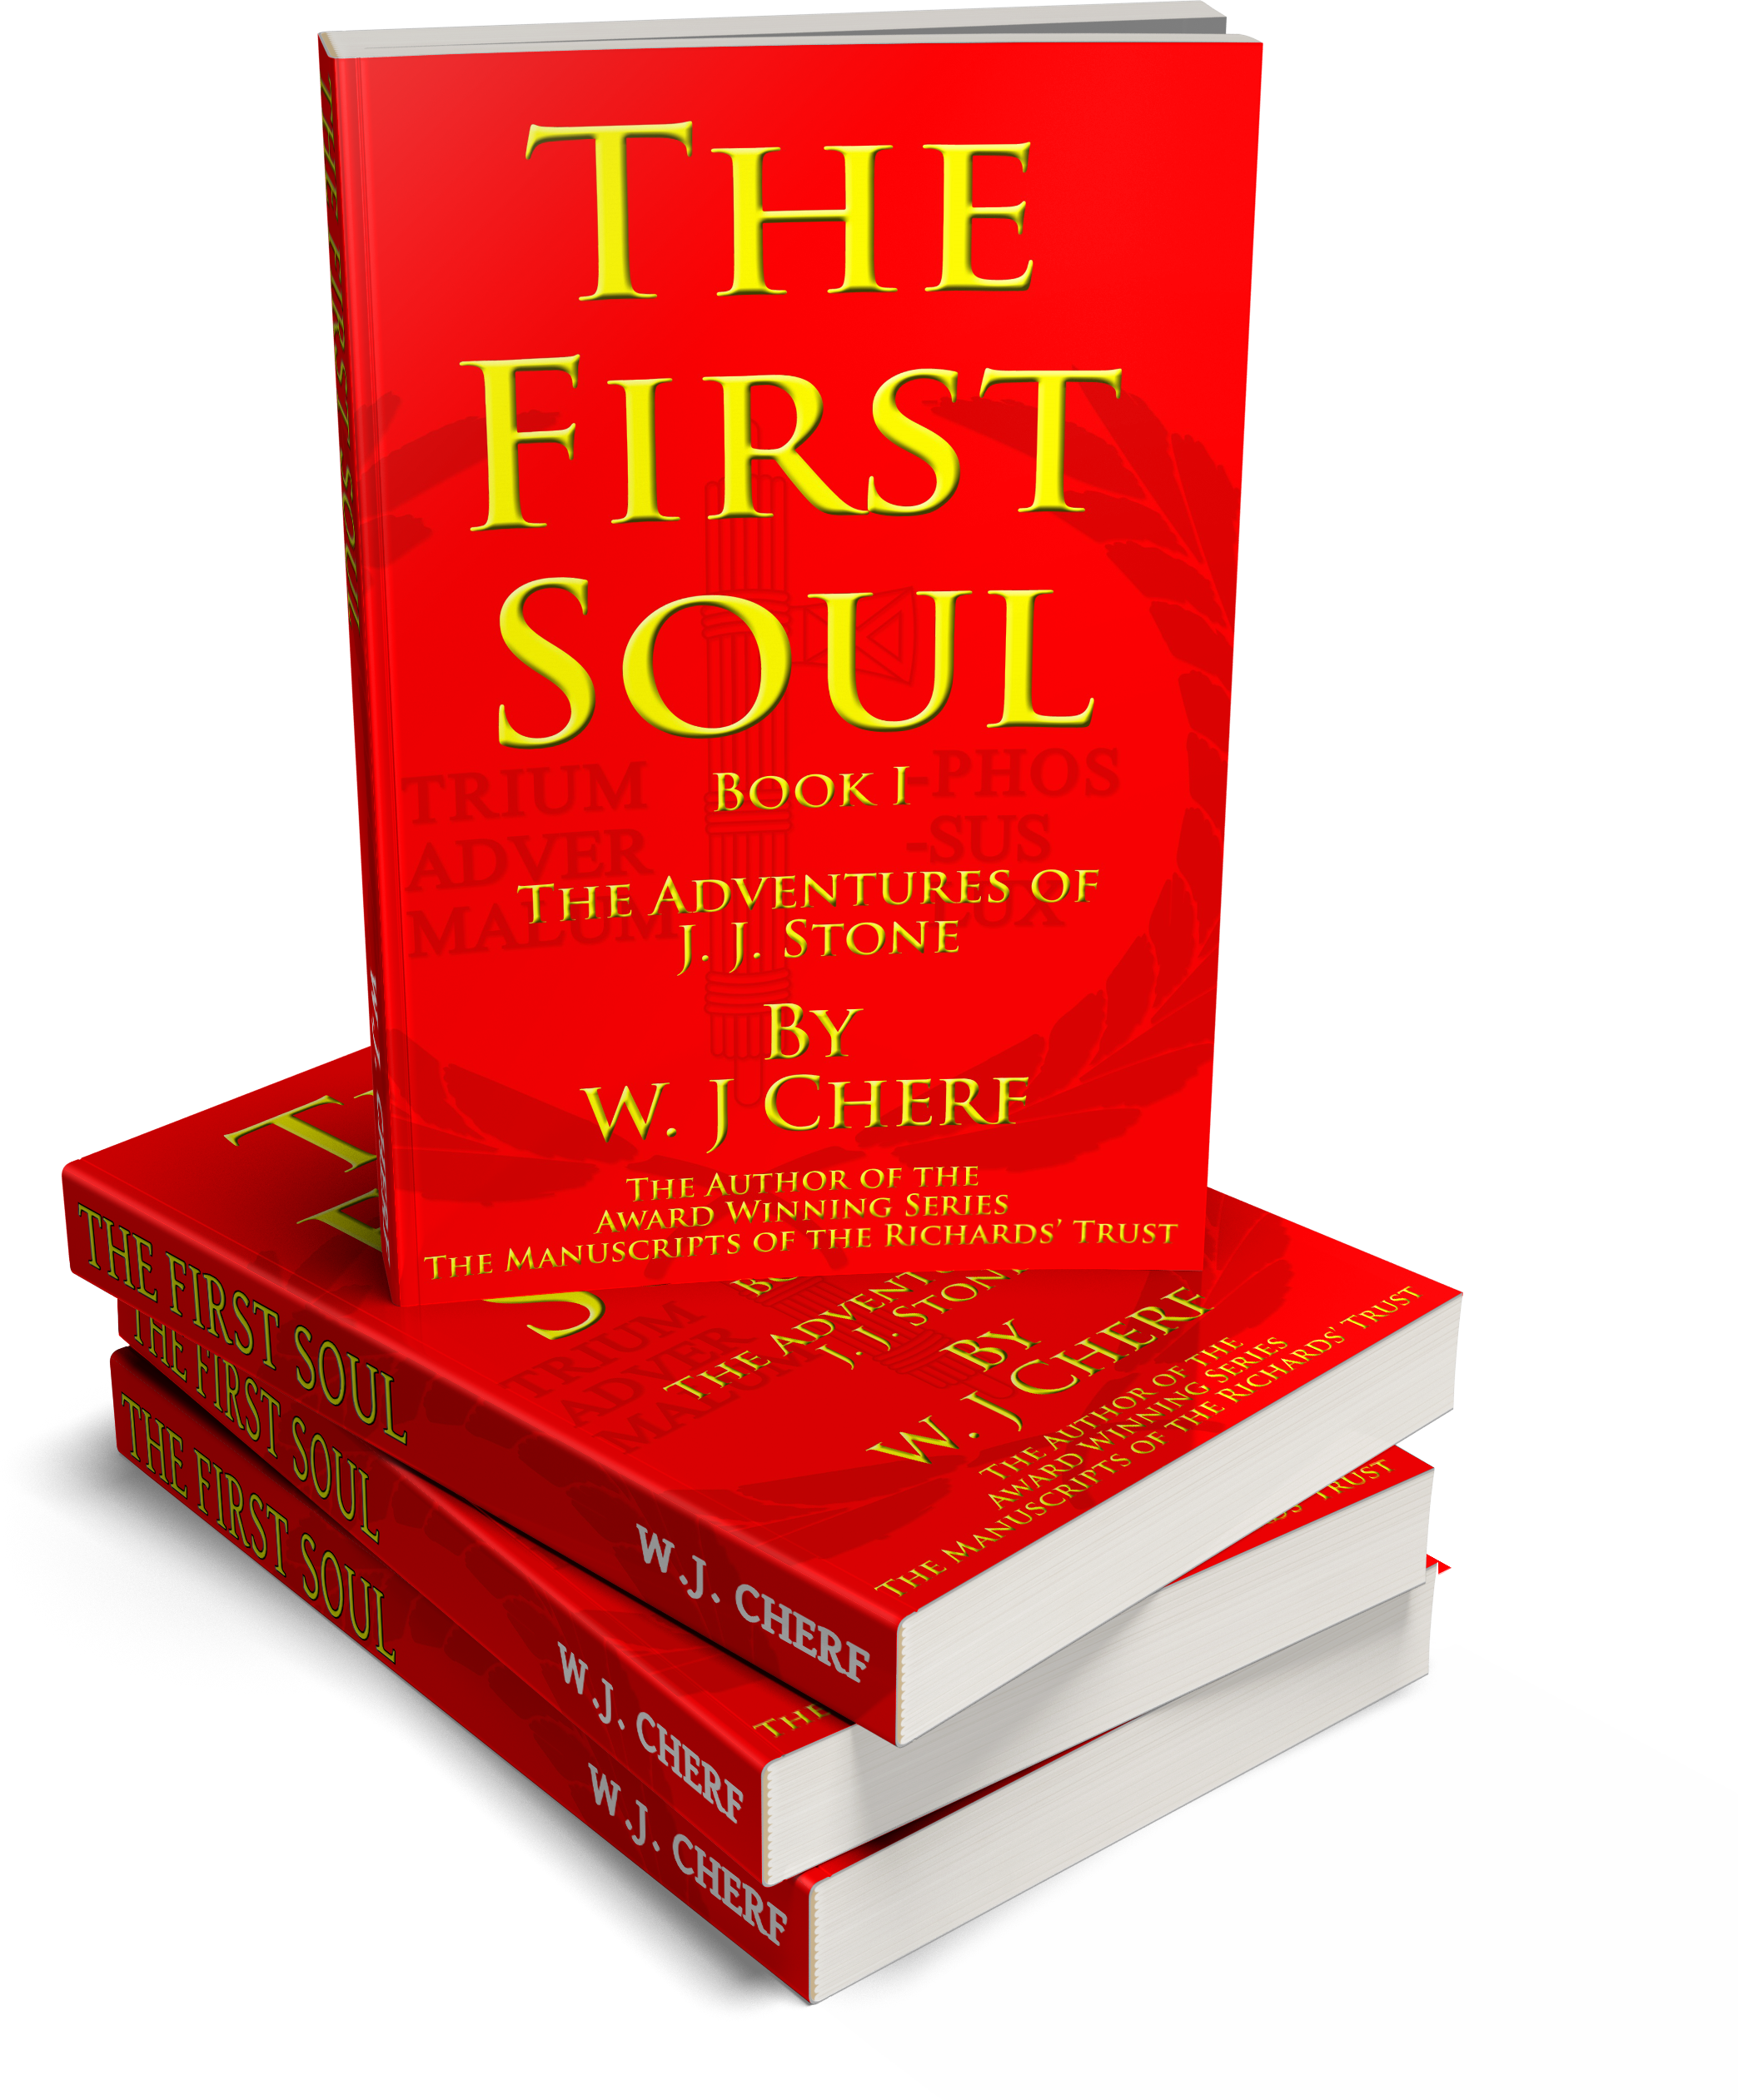 The First Soul